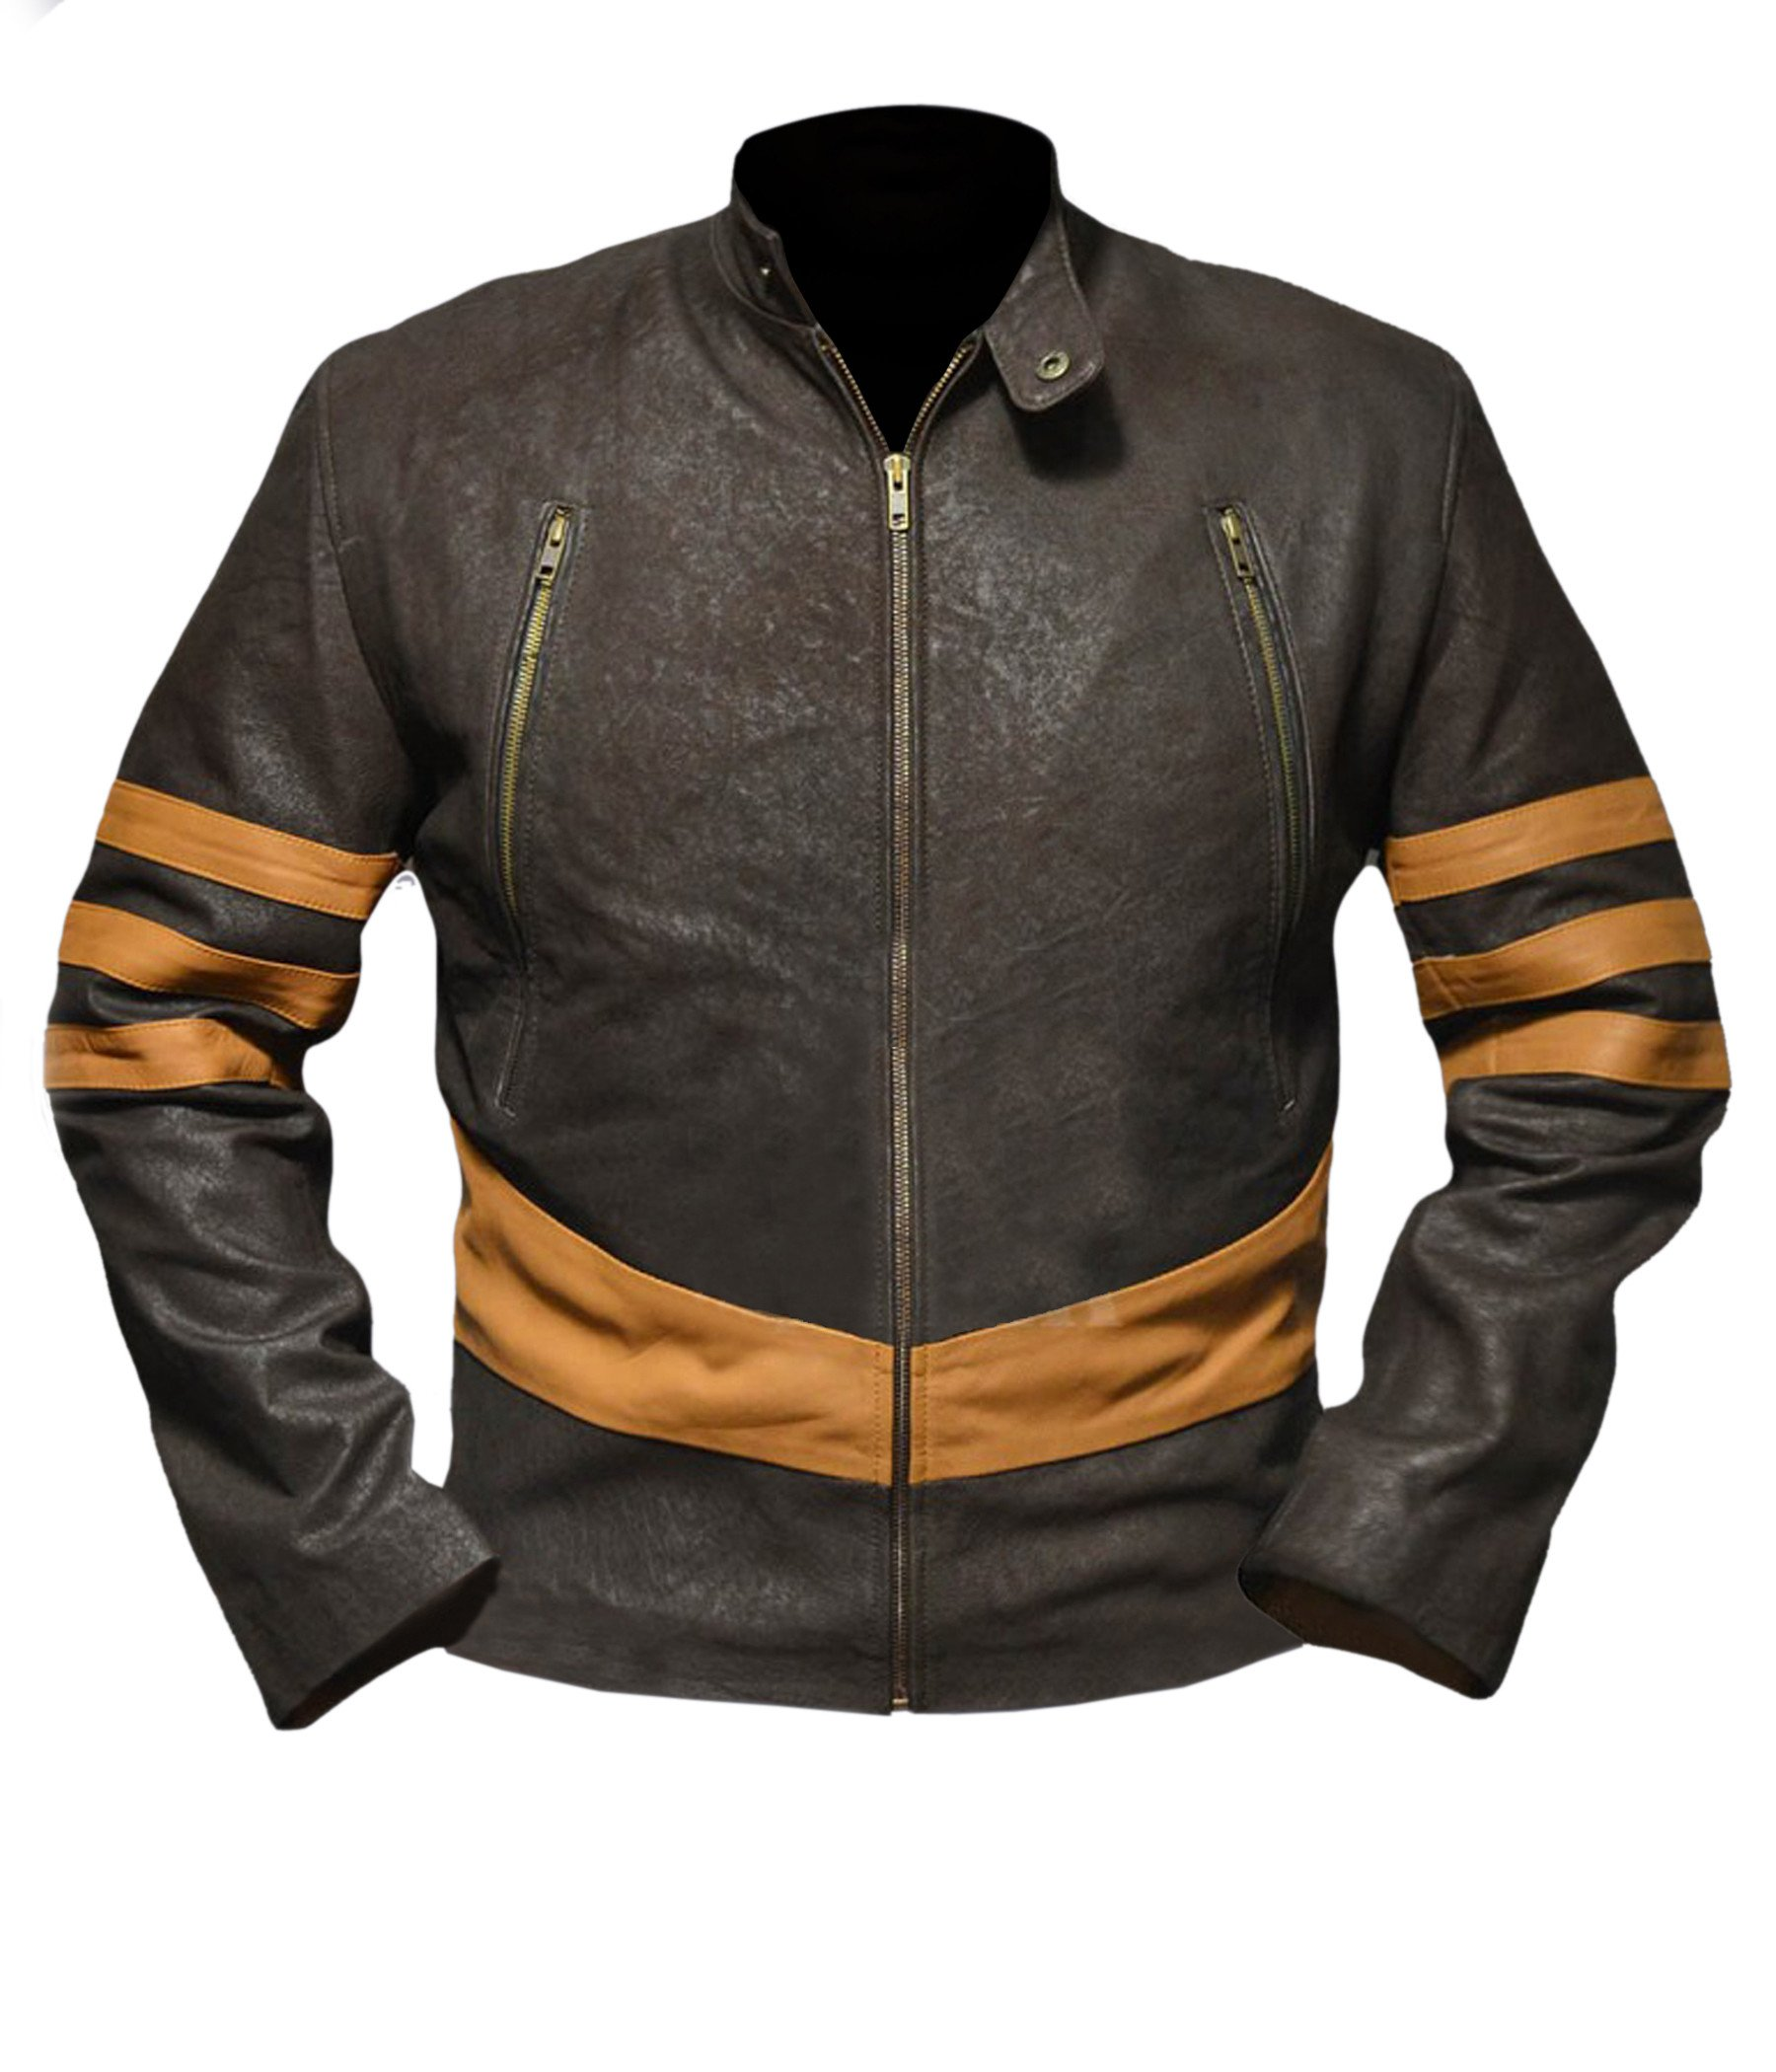 Flesh & Hide F&H Boy's X-Men Origins Wolverine Genuine Leather Jacket M Brown by Flesh & Hide